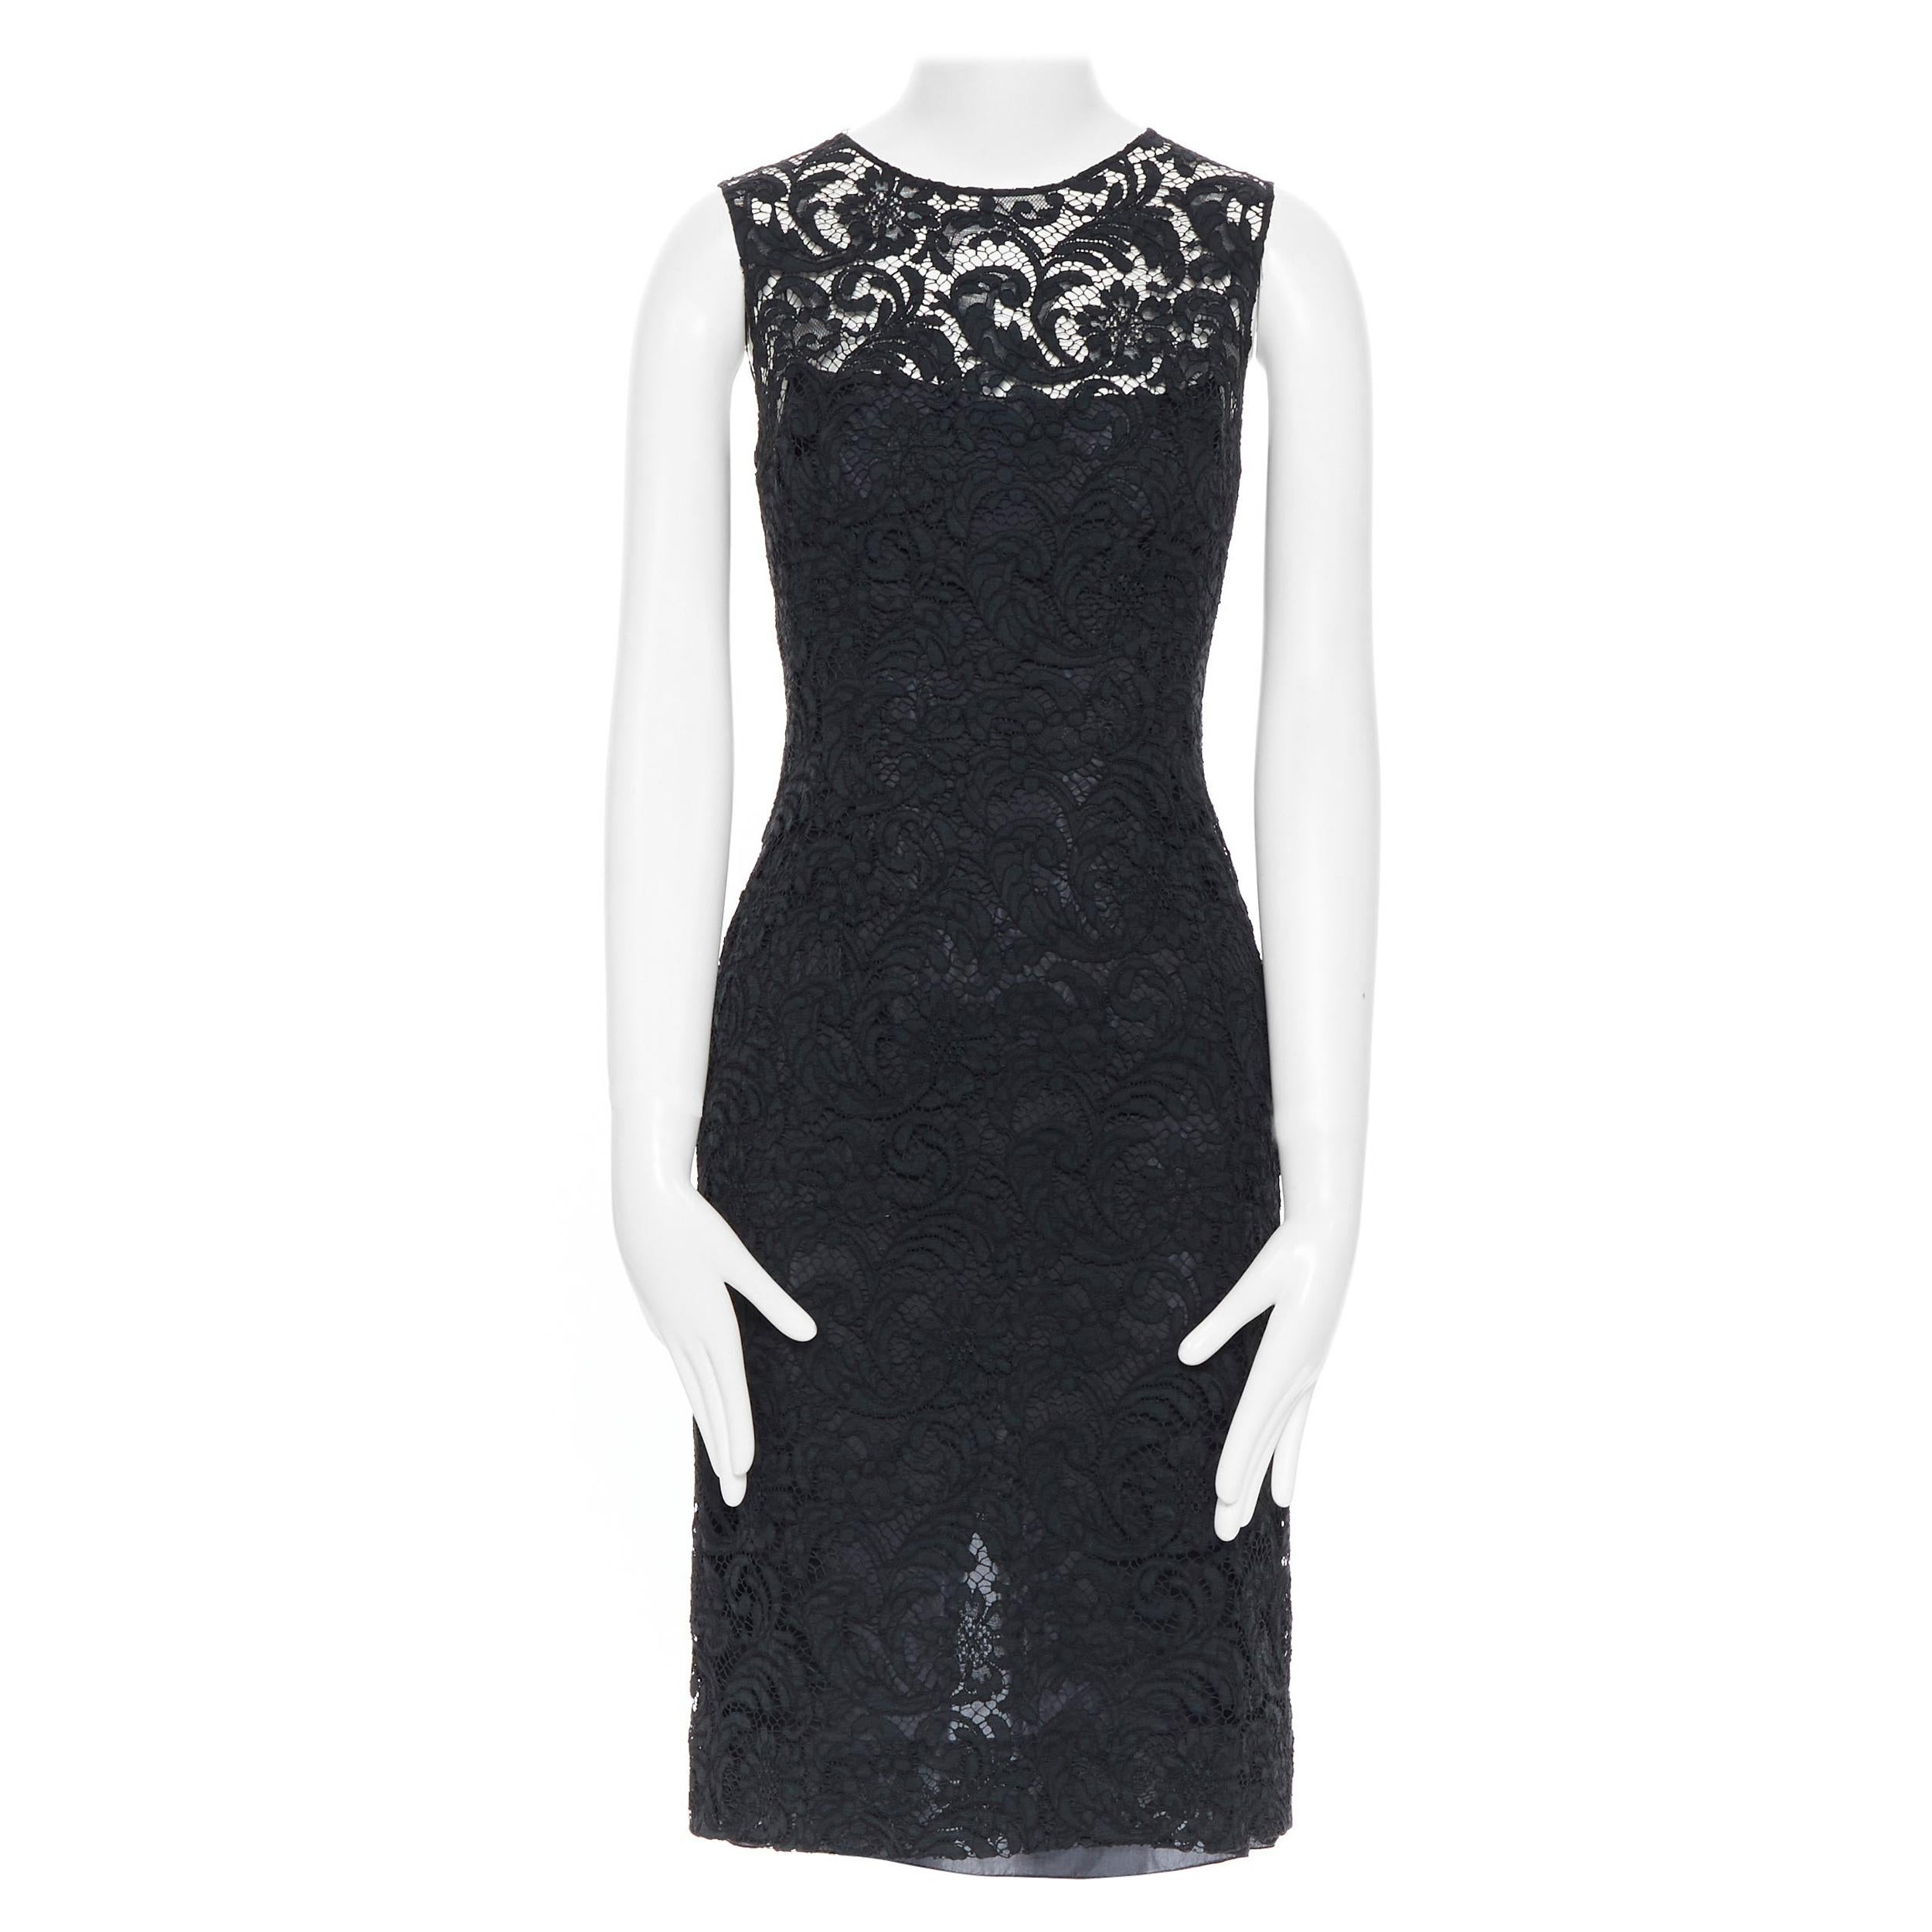 PRADA 2008 black floral lace lined sleeveless cocktail dress IT38